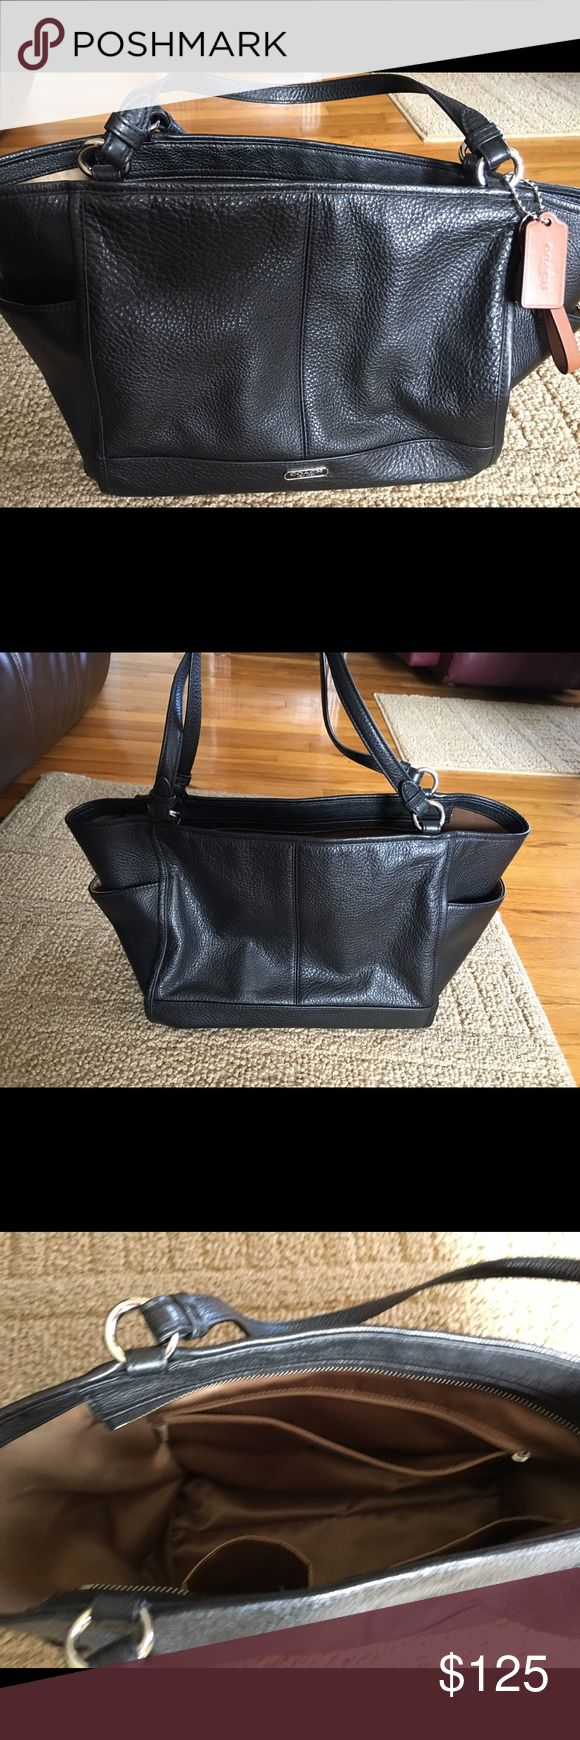 COACH POCKETBOOK!. AWESOME DEAL ON THIS ONE! COACH POCKETBOOK! BRAND NEW AND NEVER USED!  (NC) Coach Bags Shoulder Bags